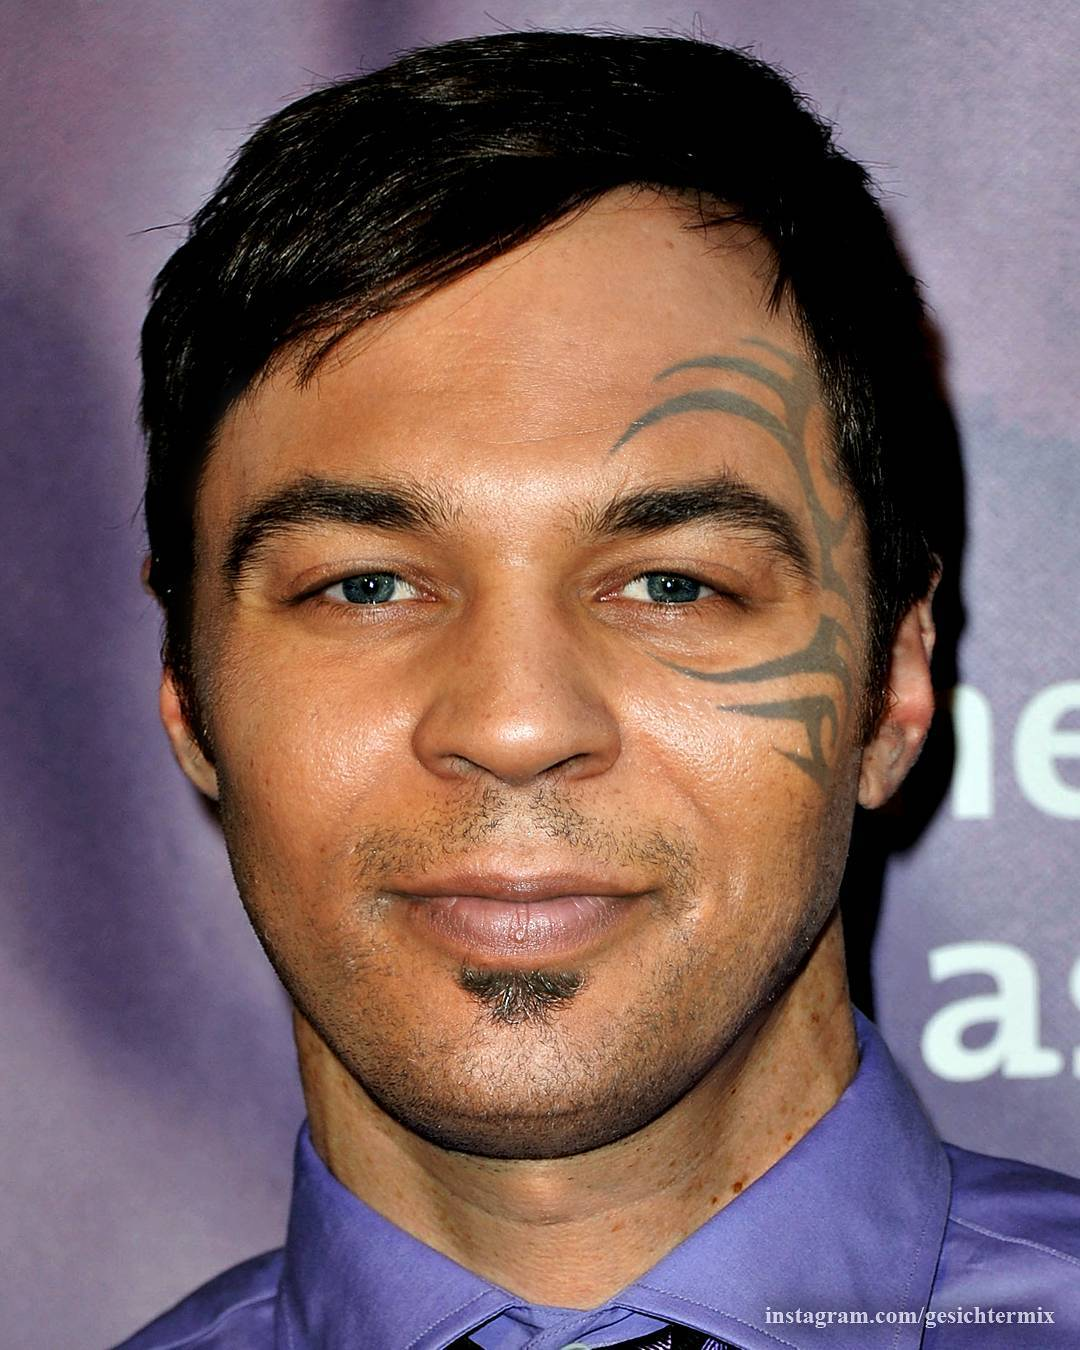 Photoshop Guru Fuses Celebrity Faces Together - Jim Parsons and Mike Tyson